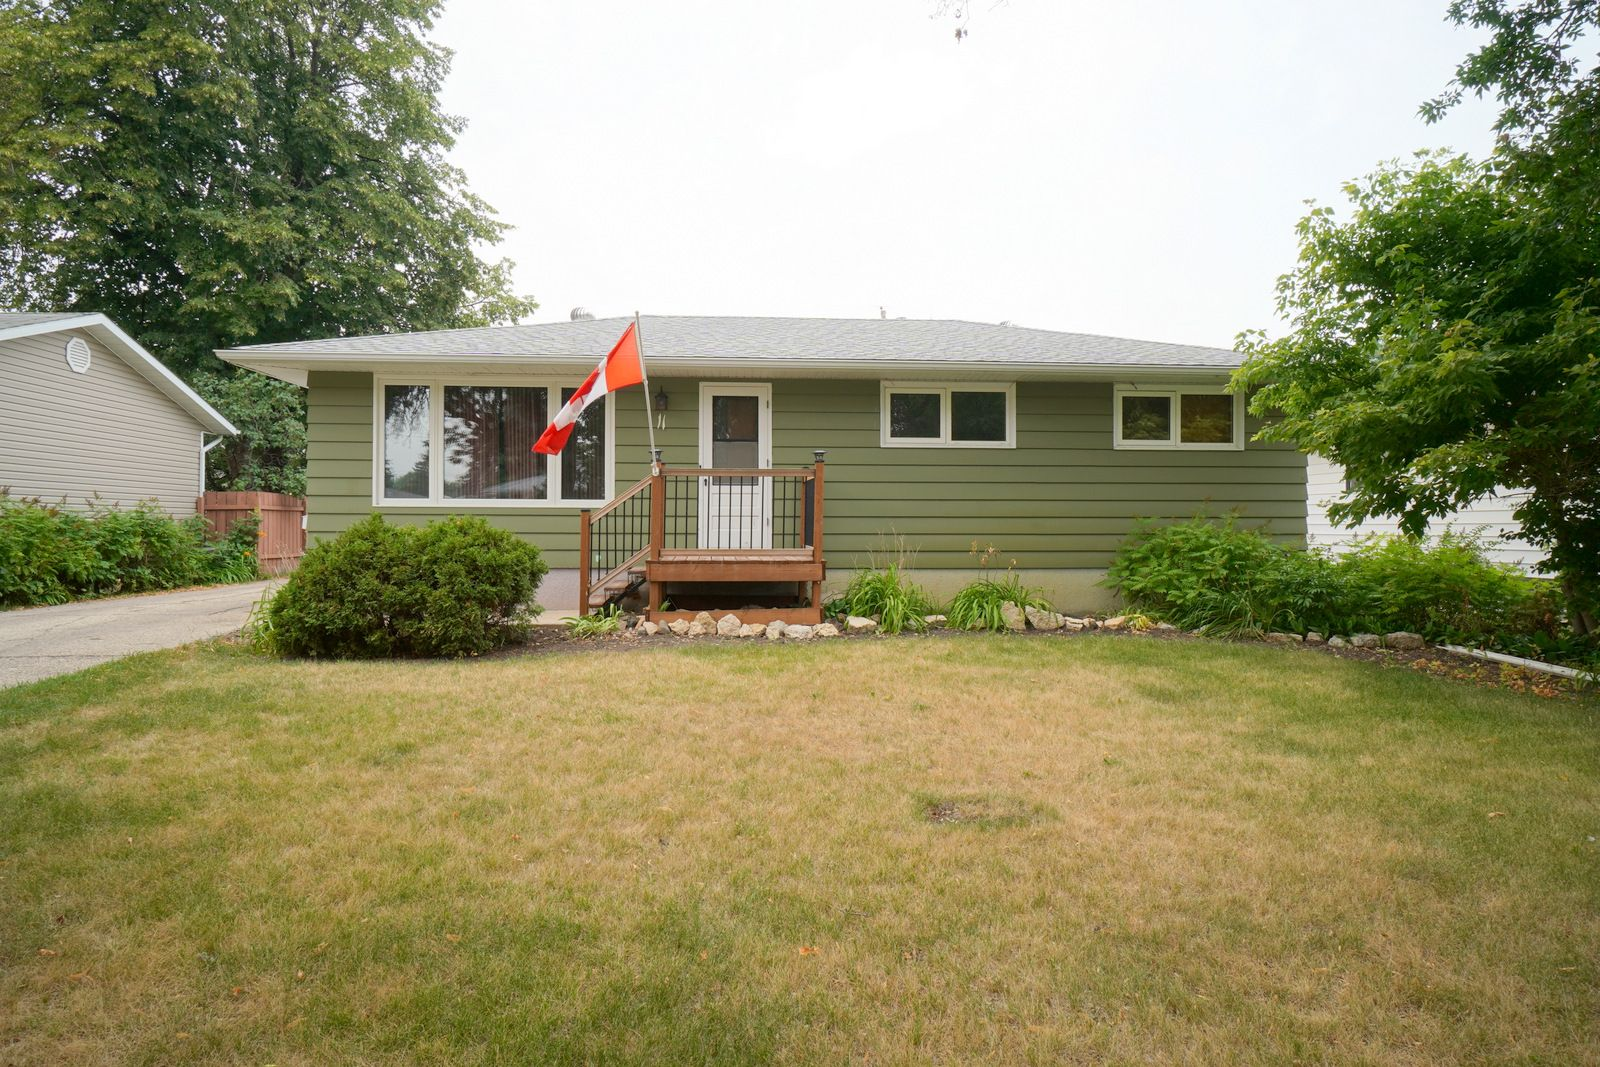 Main Photo: 11 Roe St in Portage la Prairie: House for sale : MLS®# 202120510